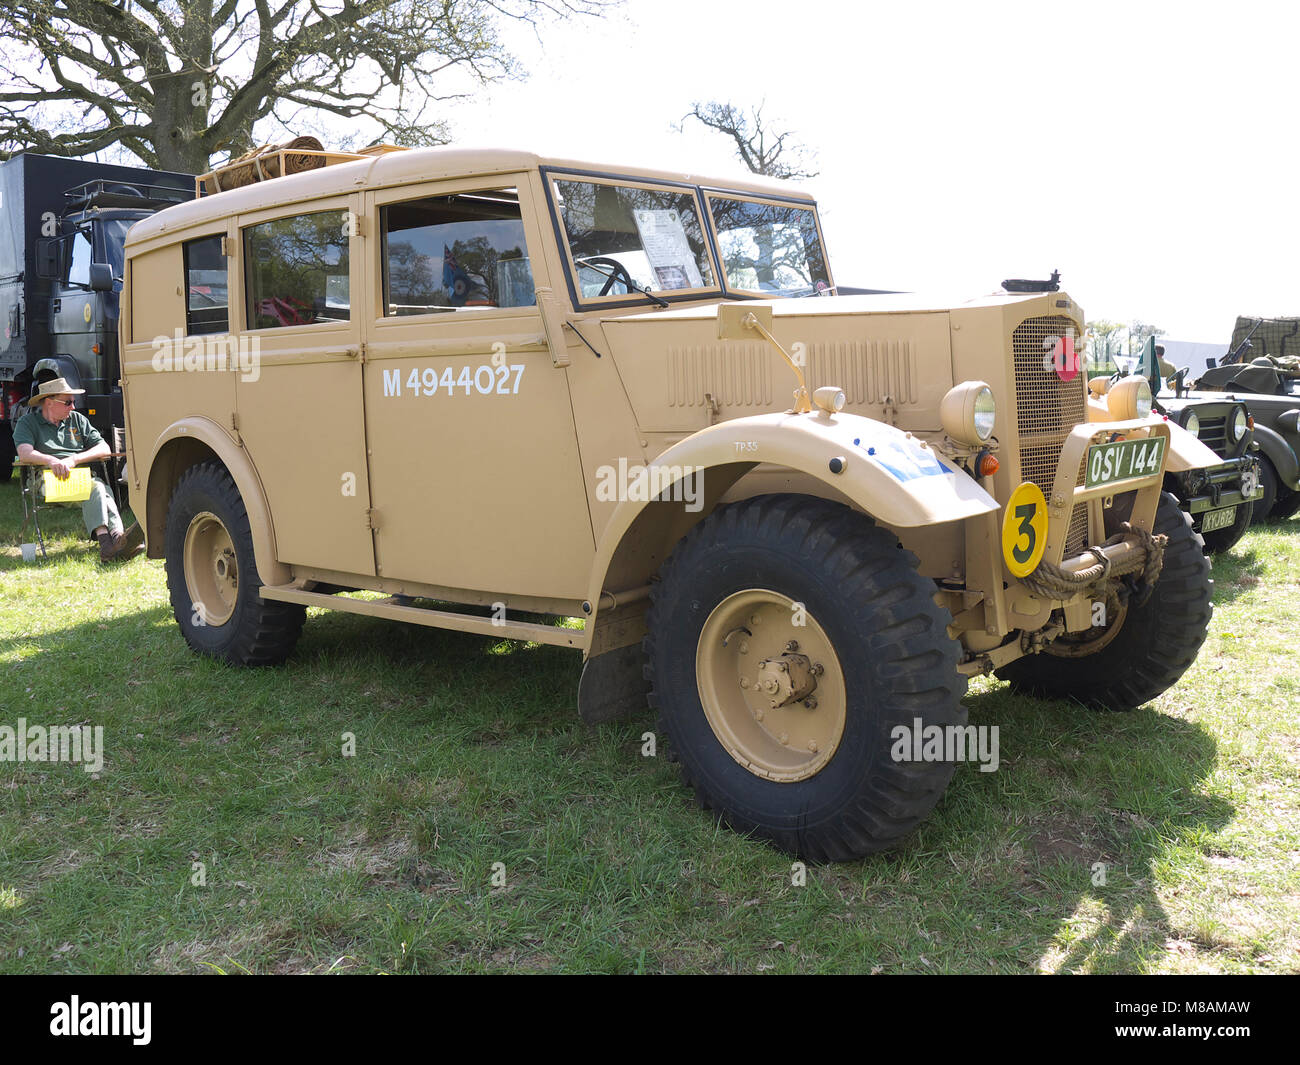 Vintage military Humber at Stradsett rally, Norfolk - Stock Image